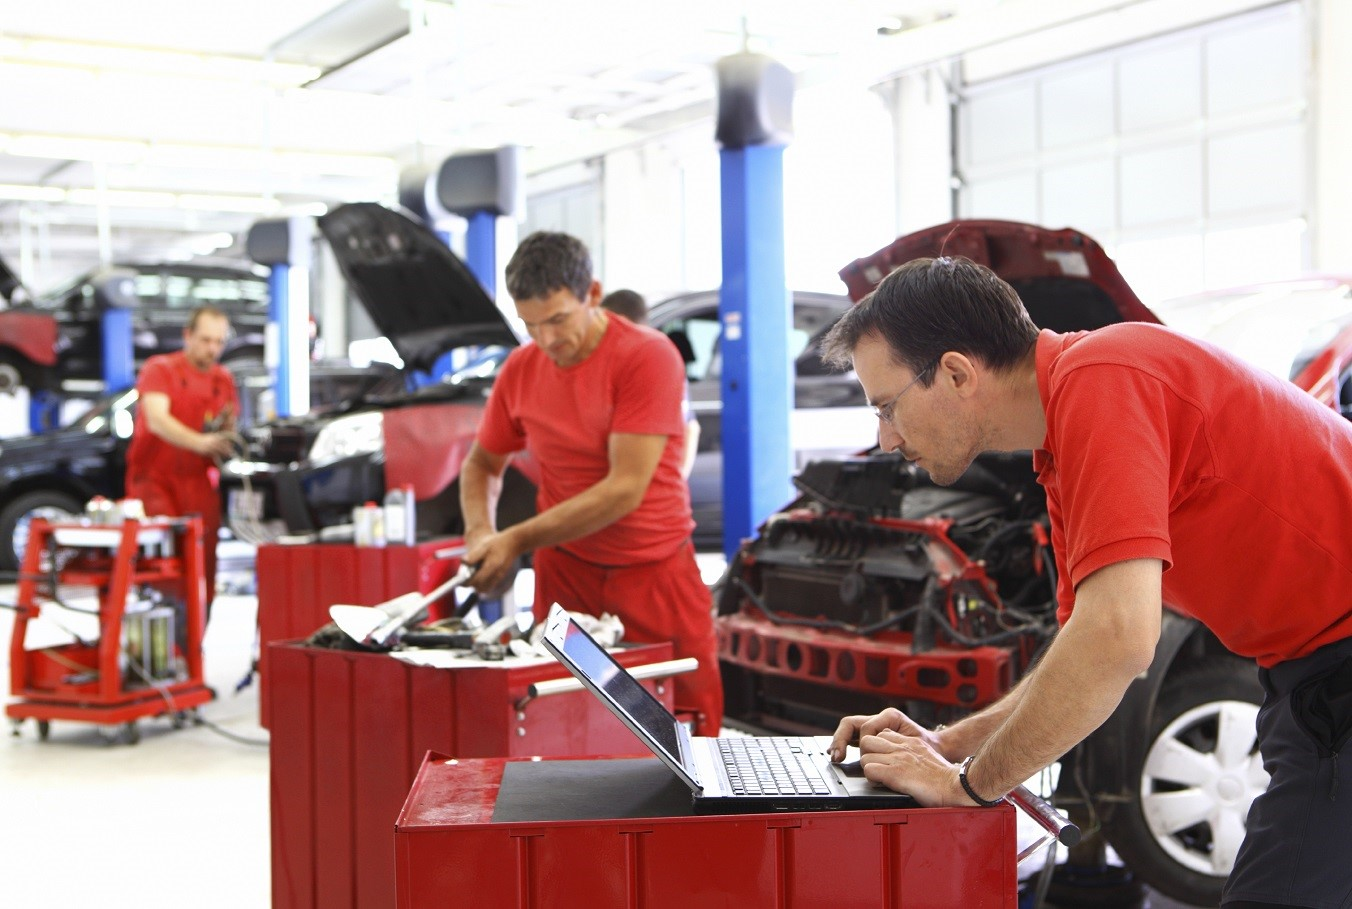 We Will Take Great Care of Your Vehicle!